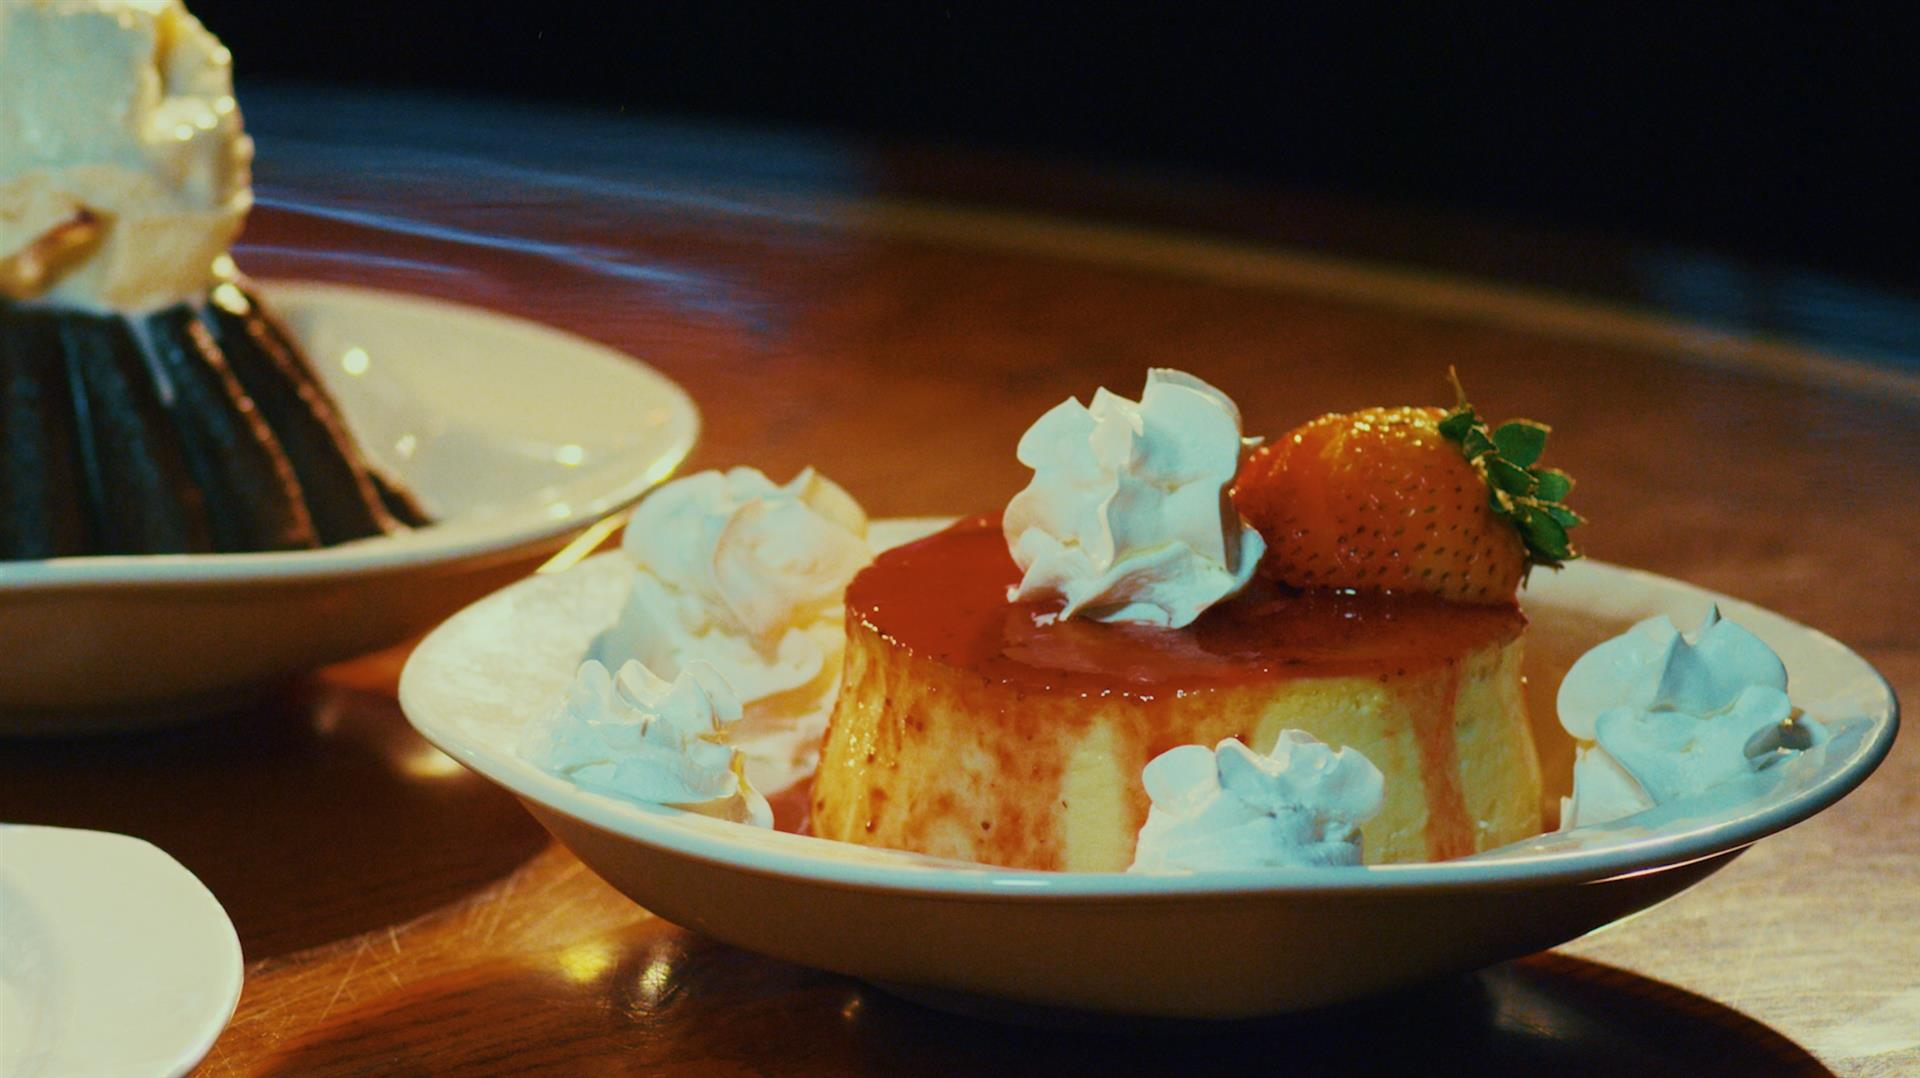 flan with strawberry garnish and whipped cream